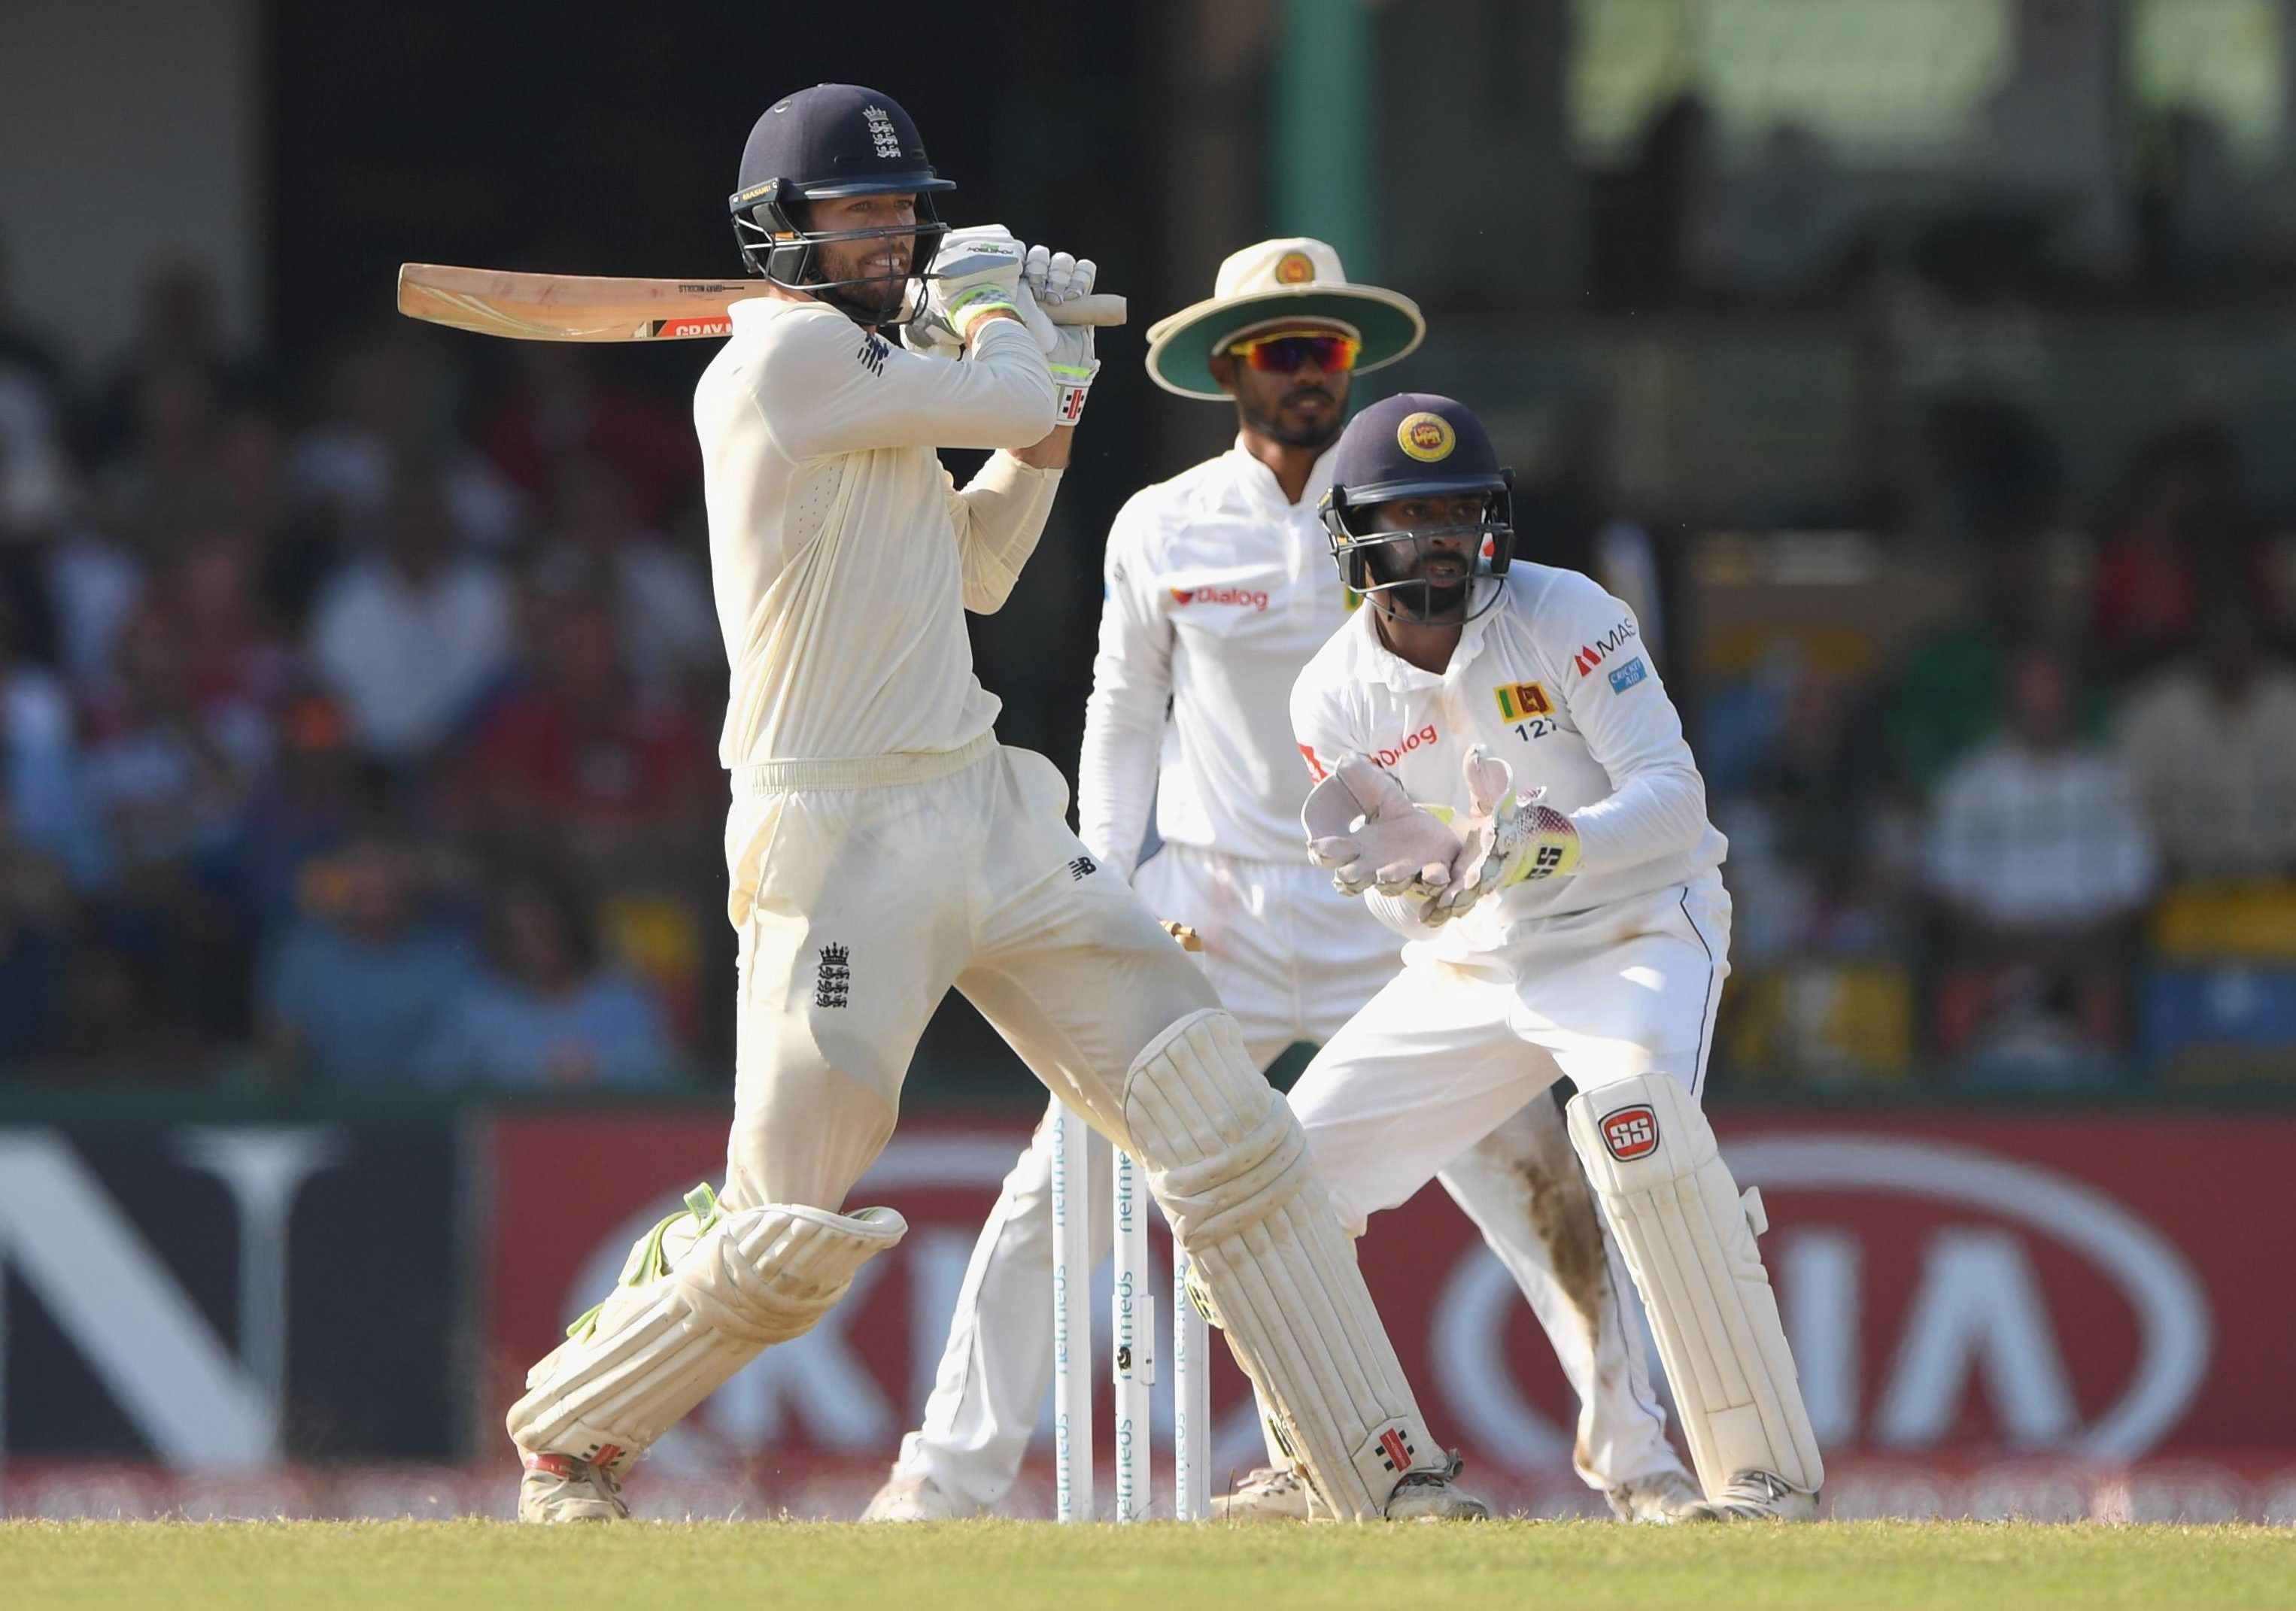 England dominated day three and need just six wickets to seal the whitewash